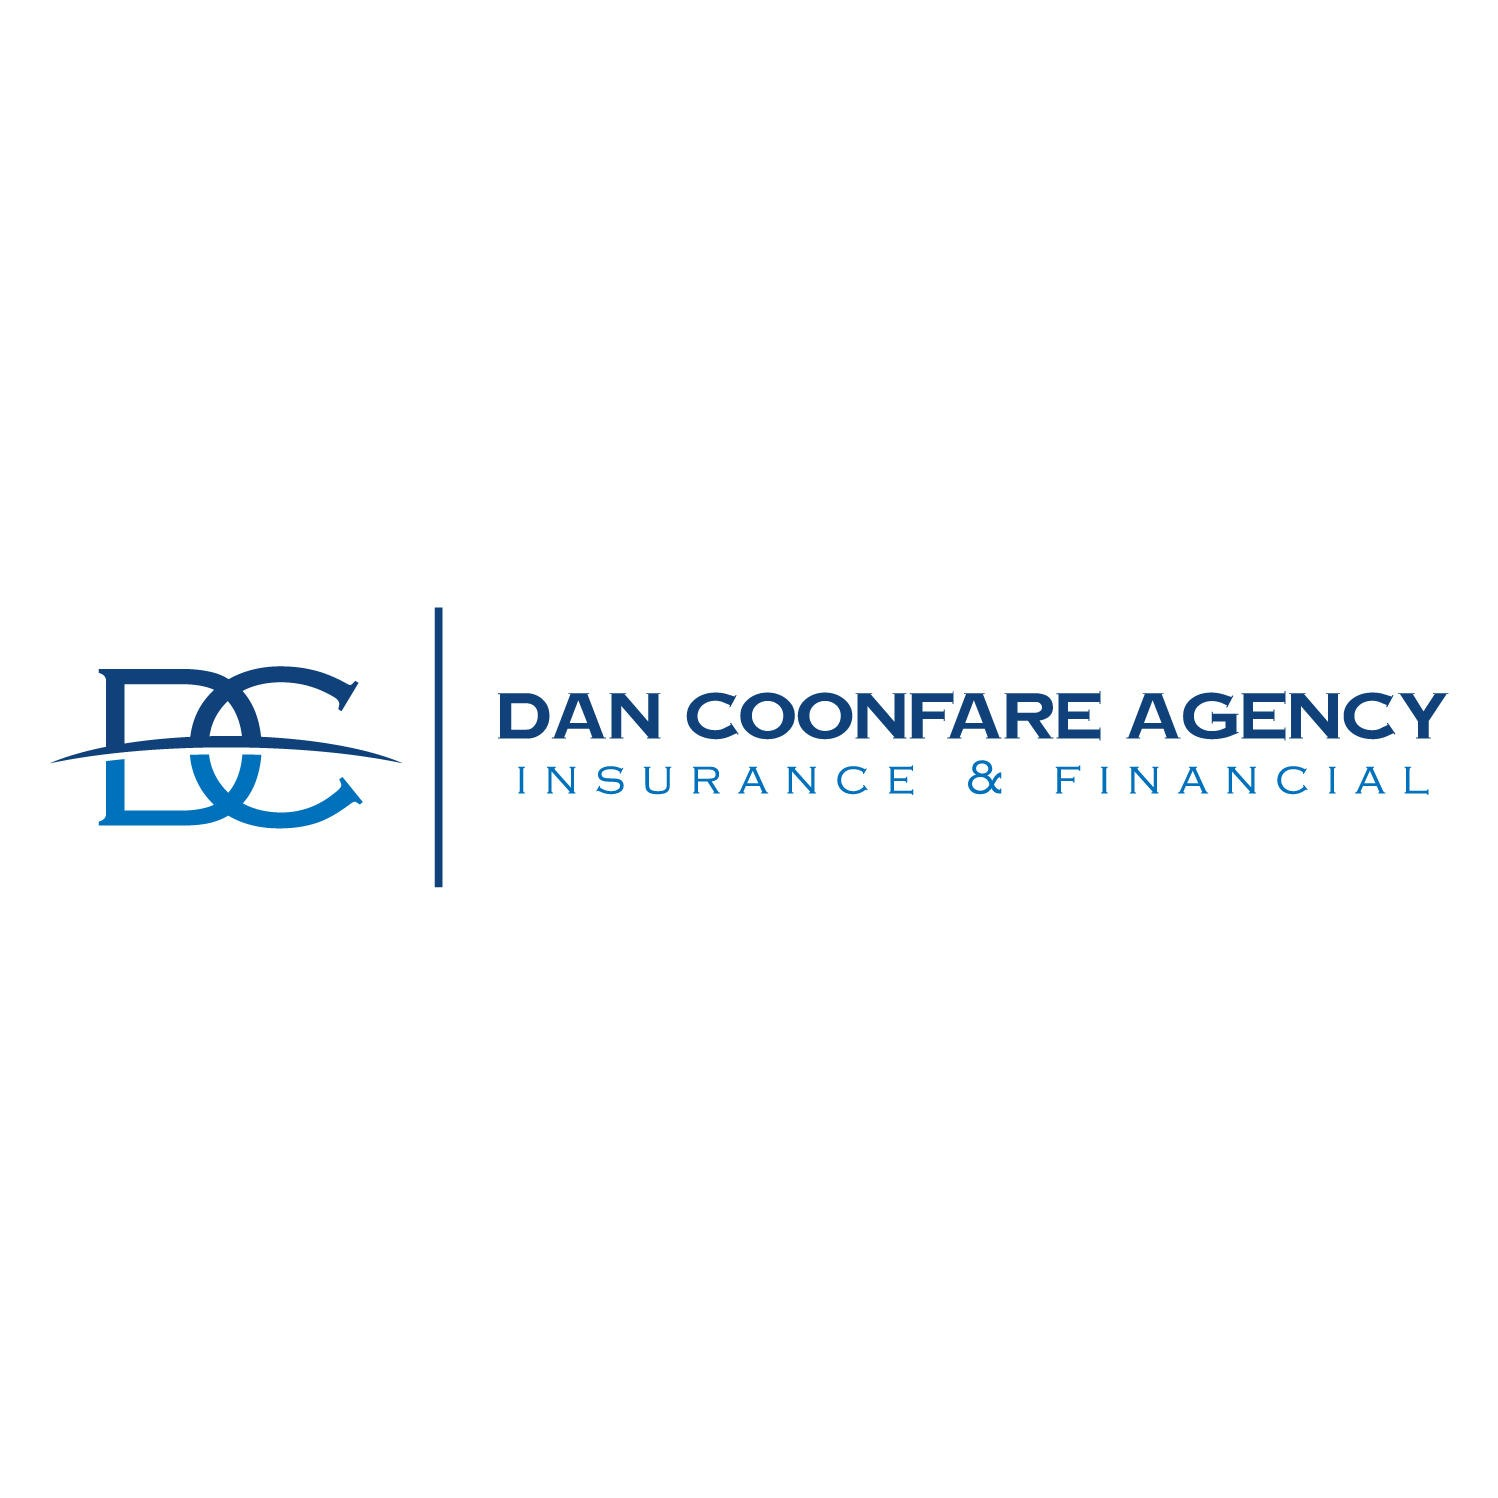 Nationwide Insurance: Dan Coonfare Agency LLC